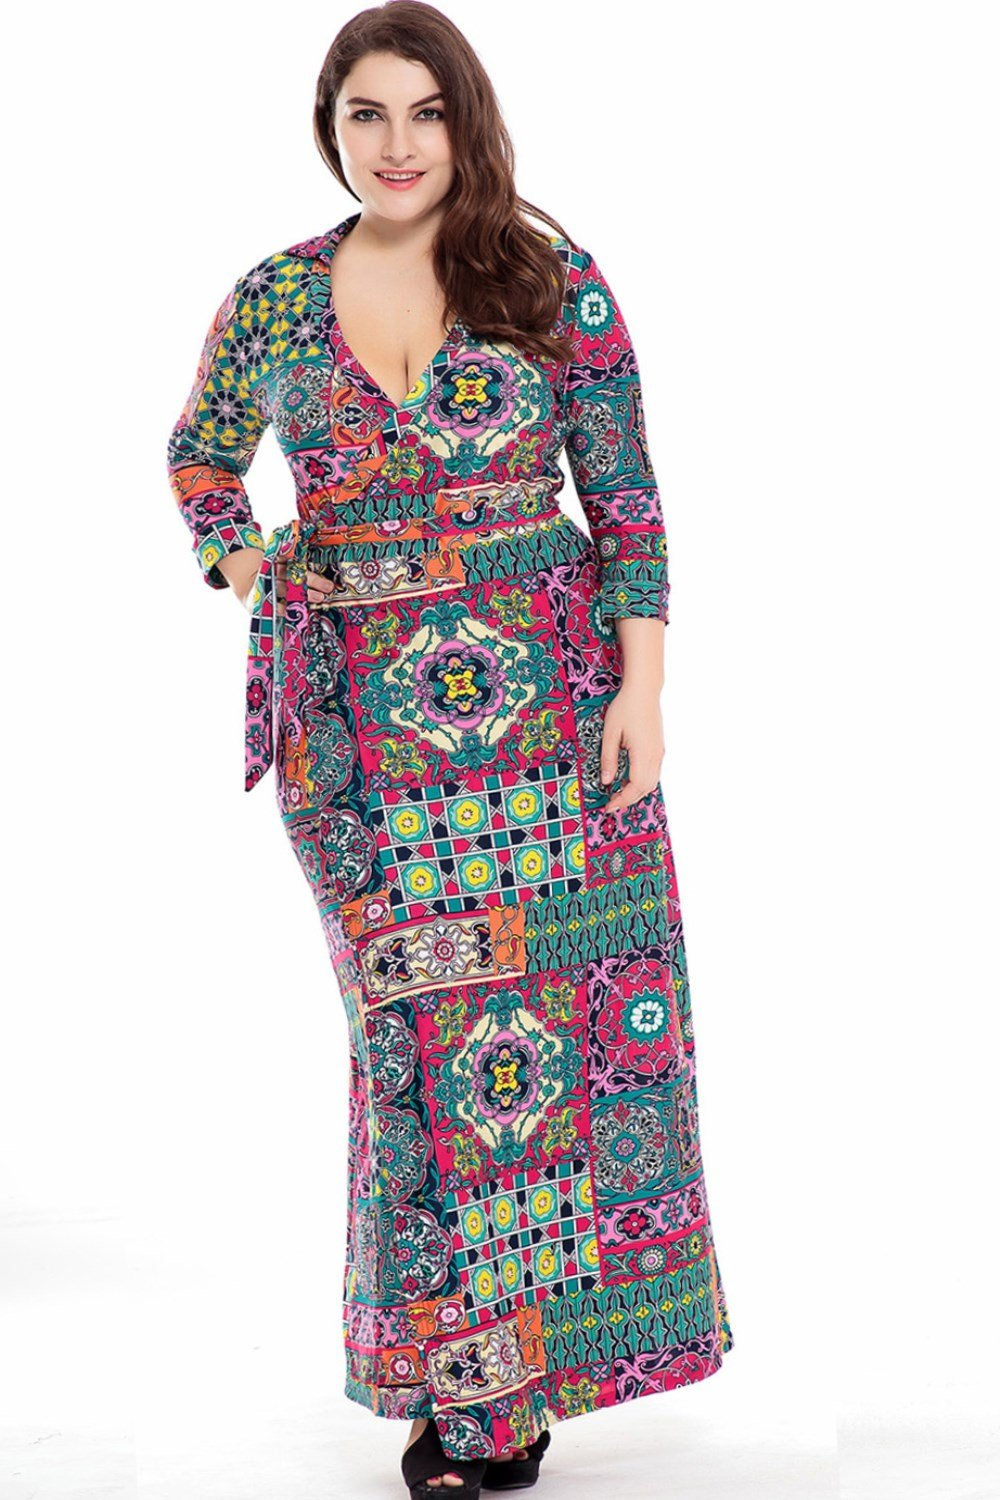 Plus size fall maxi dresses 2019 - PlusLook.eu Collection